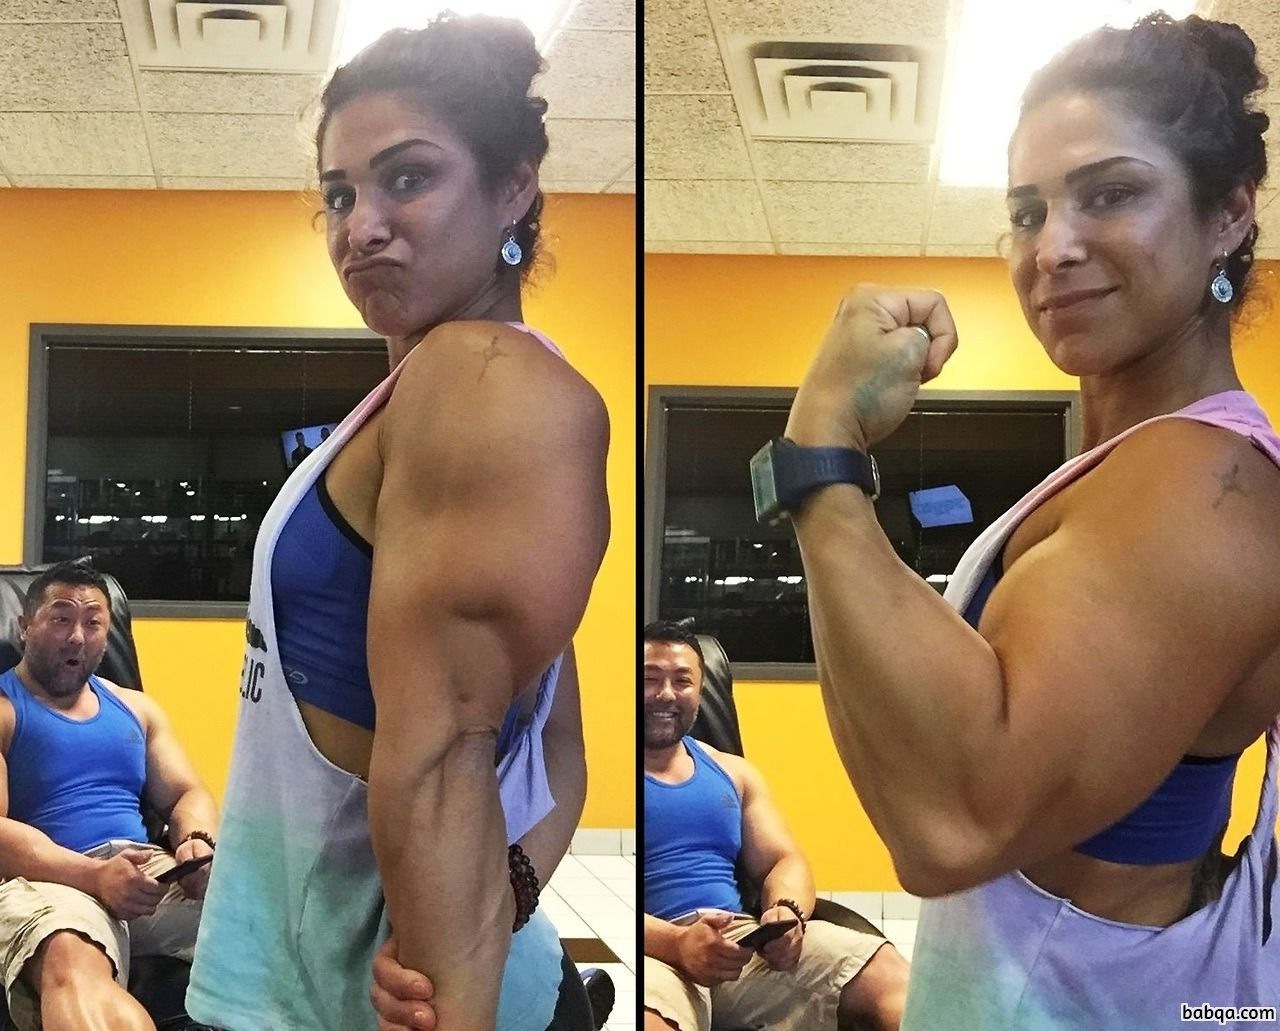 hot female bodybuilder with strong body and muscle arms repost from reddit